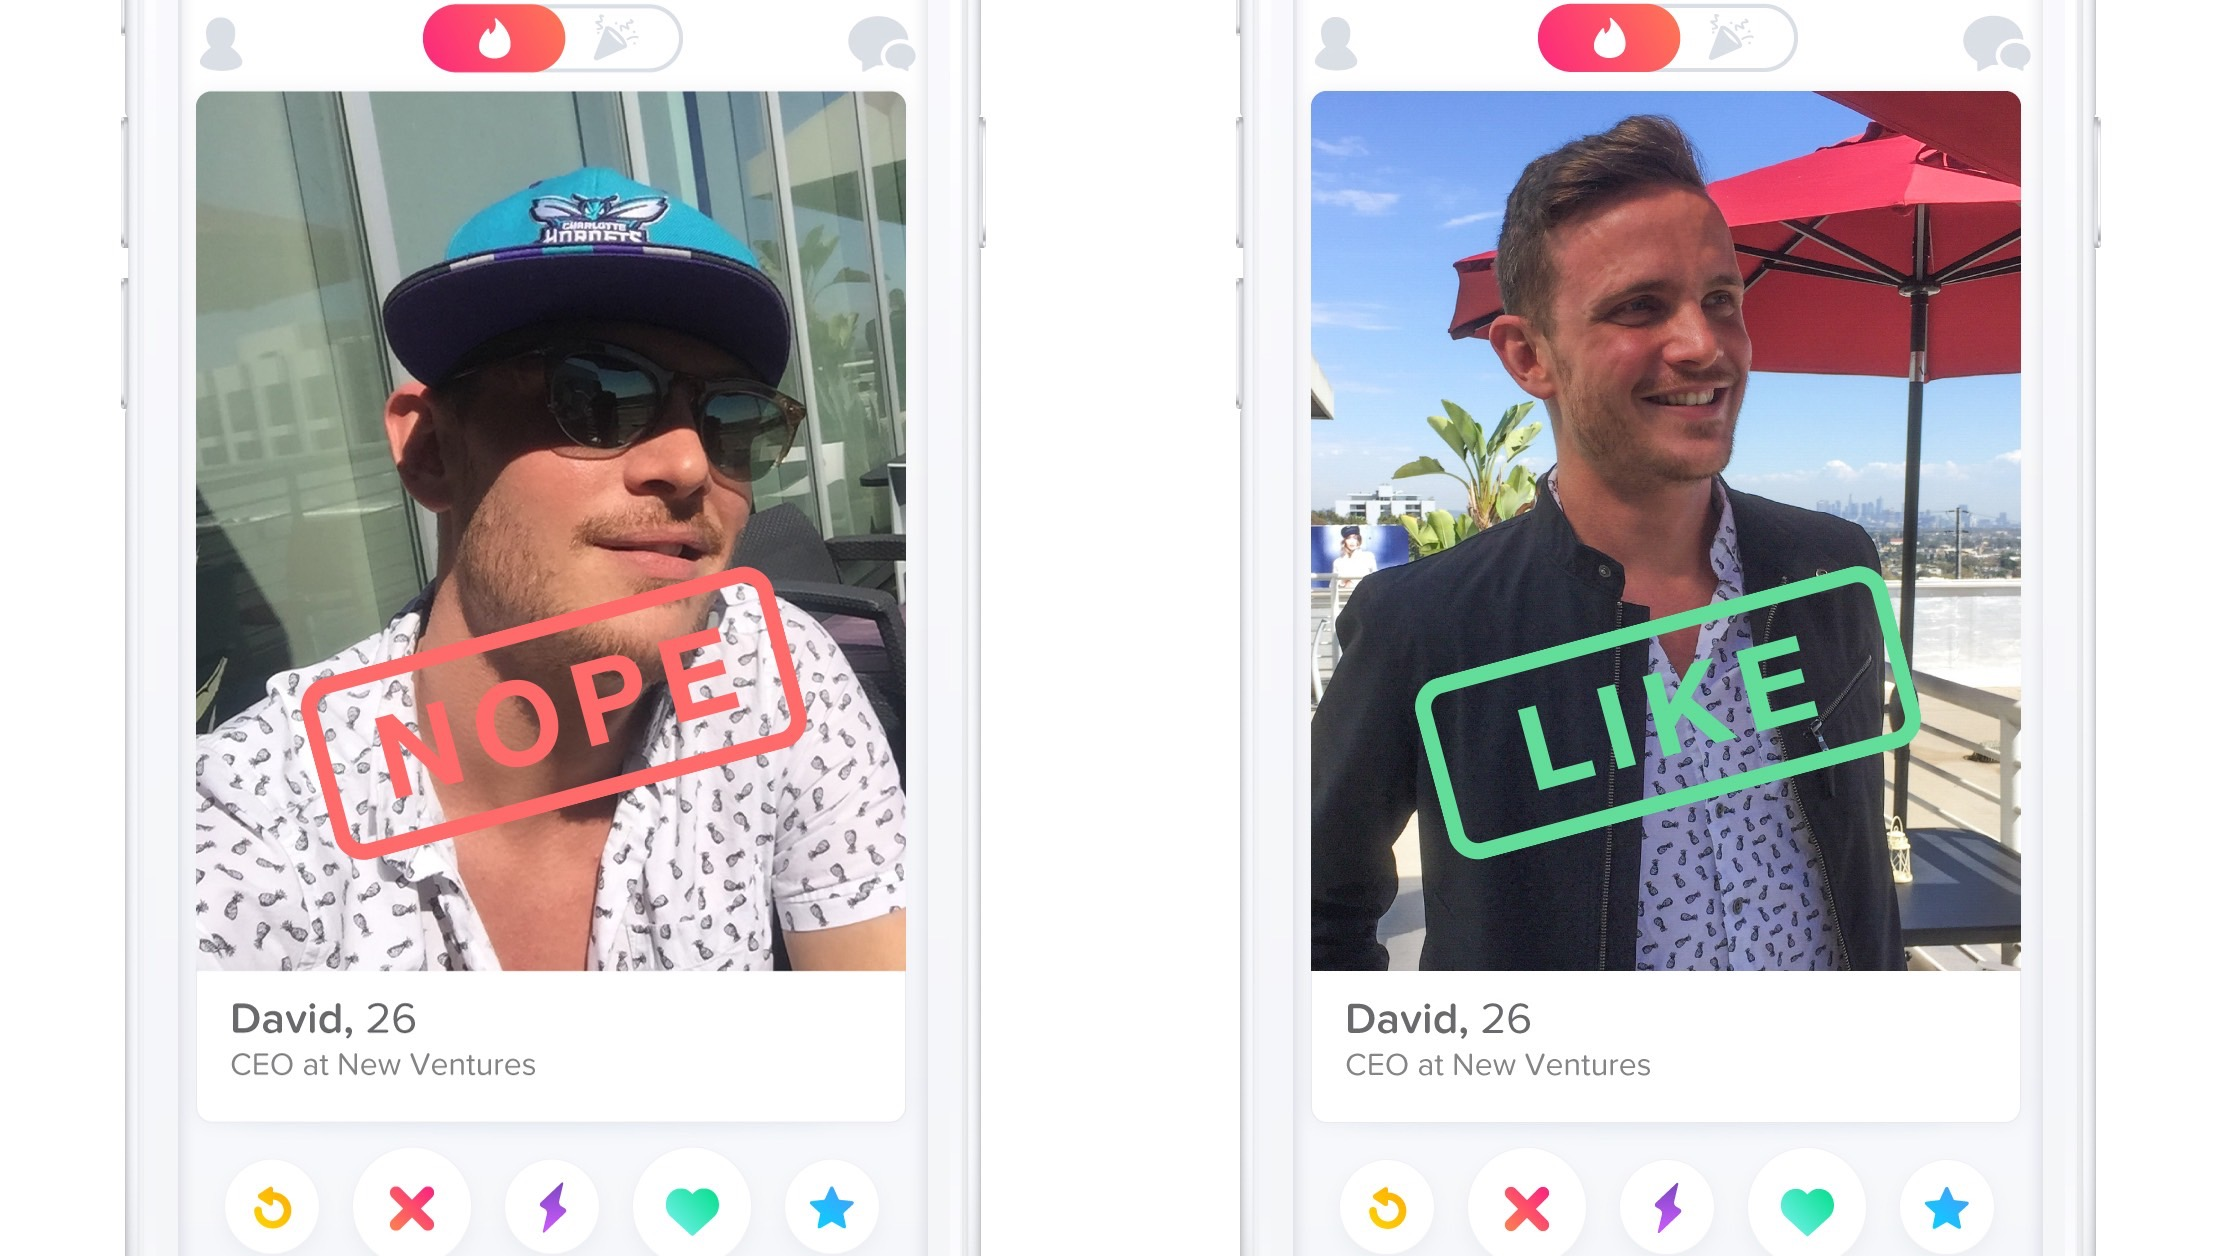 How do you know if someone swiped right on tinder